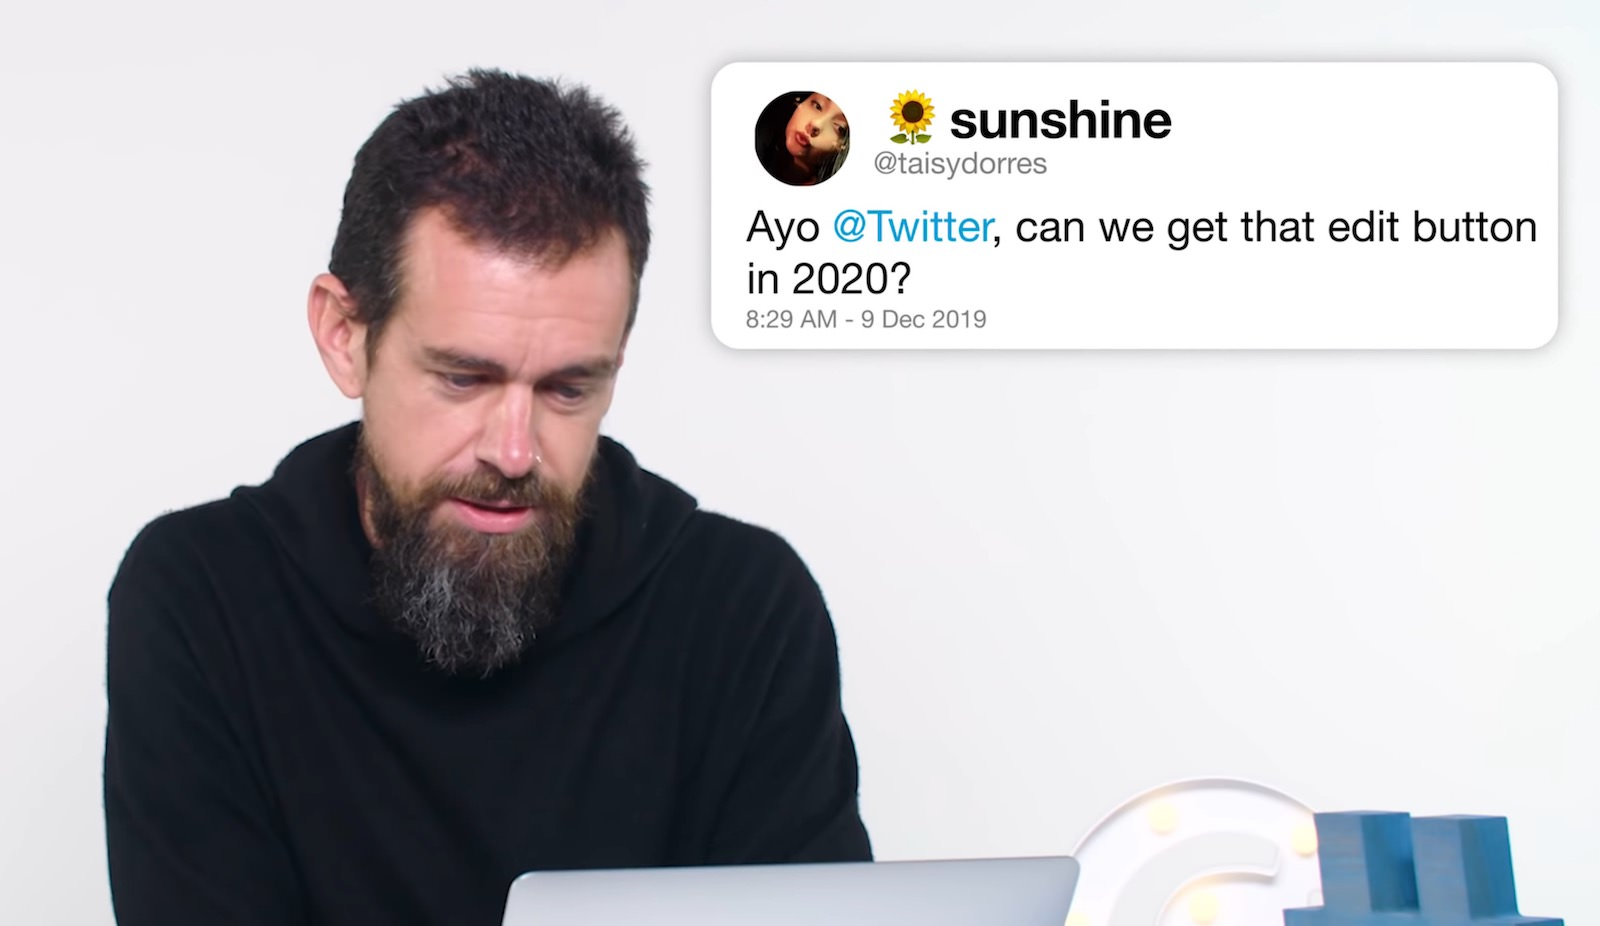 Twitter Jack Dorsey denies a edit button